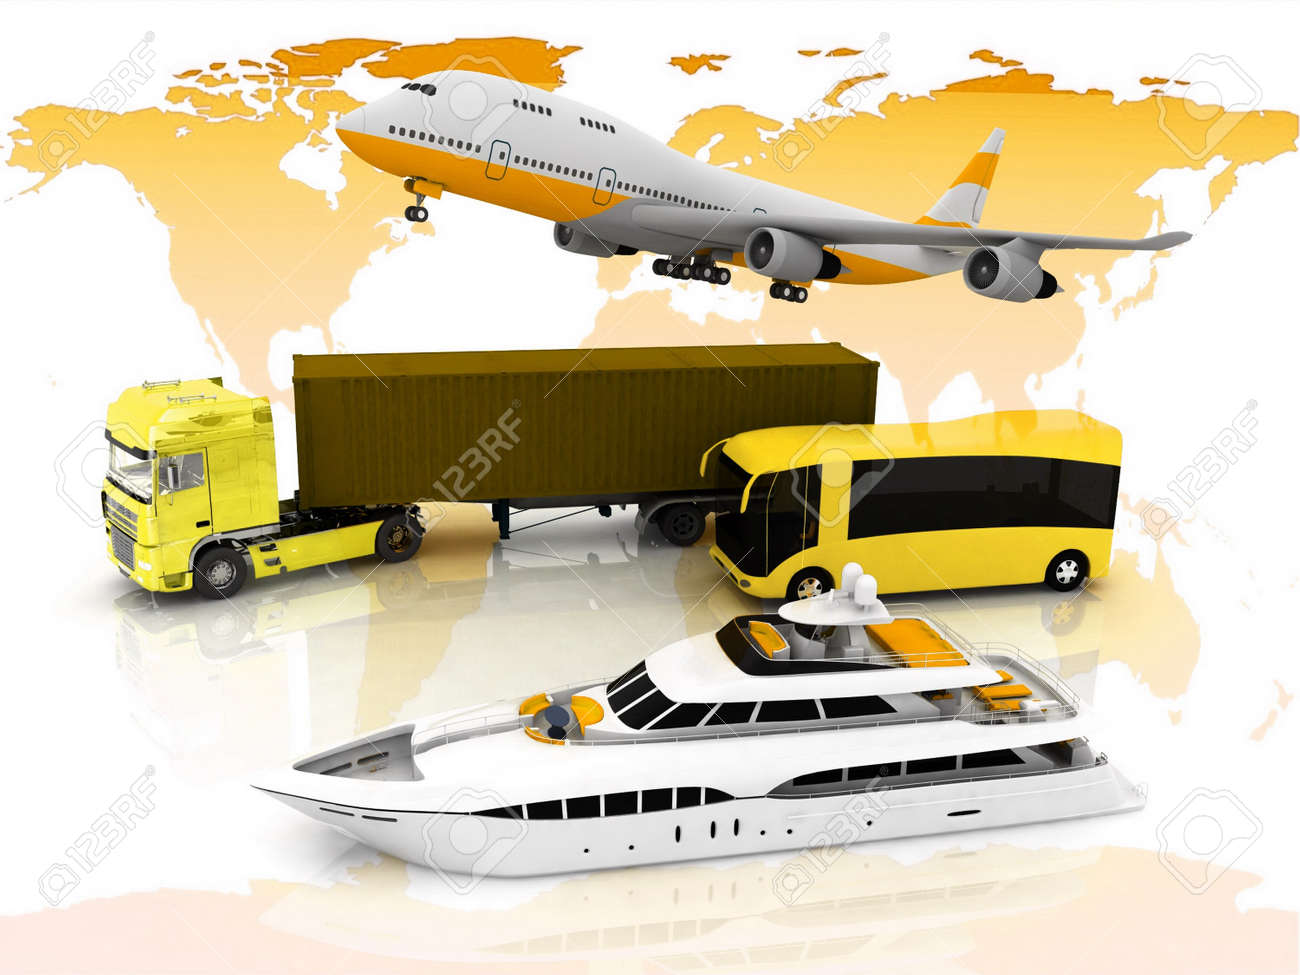 types of transport  on a background map of the world Stock Photo - 12406155